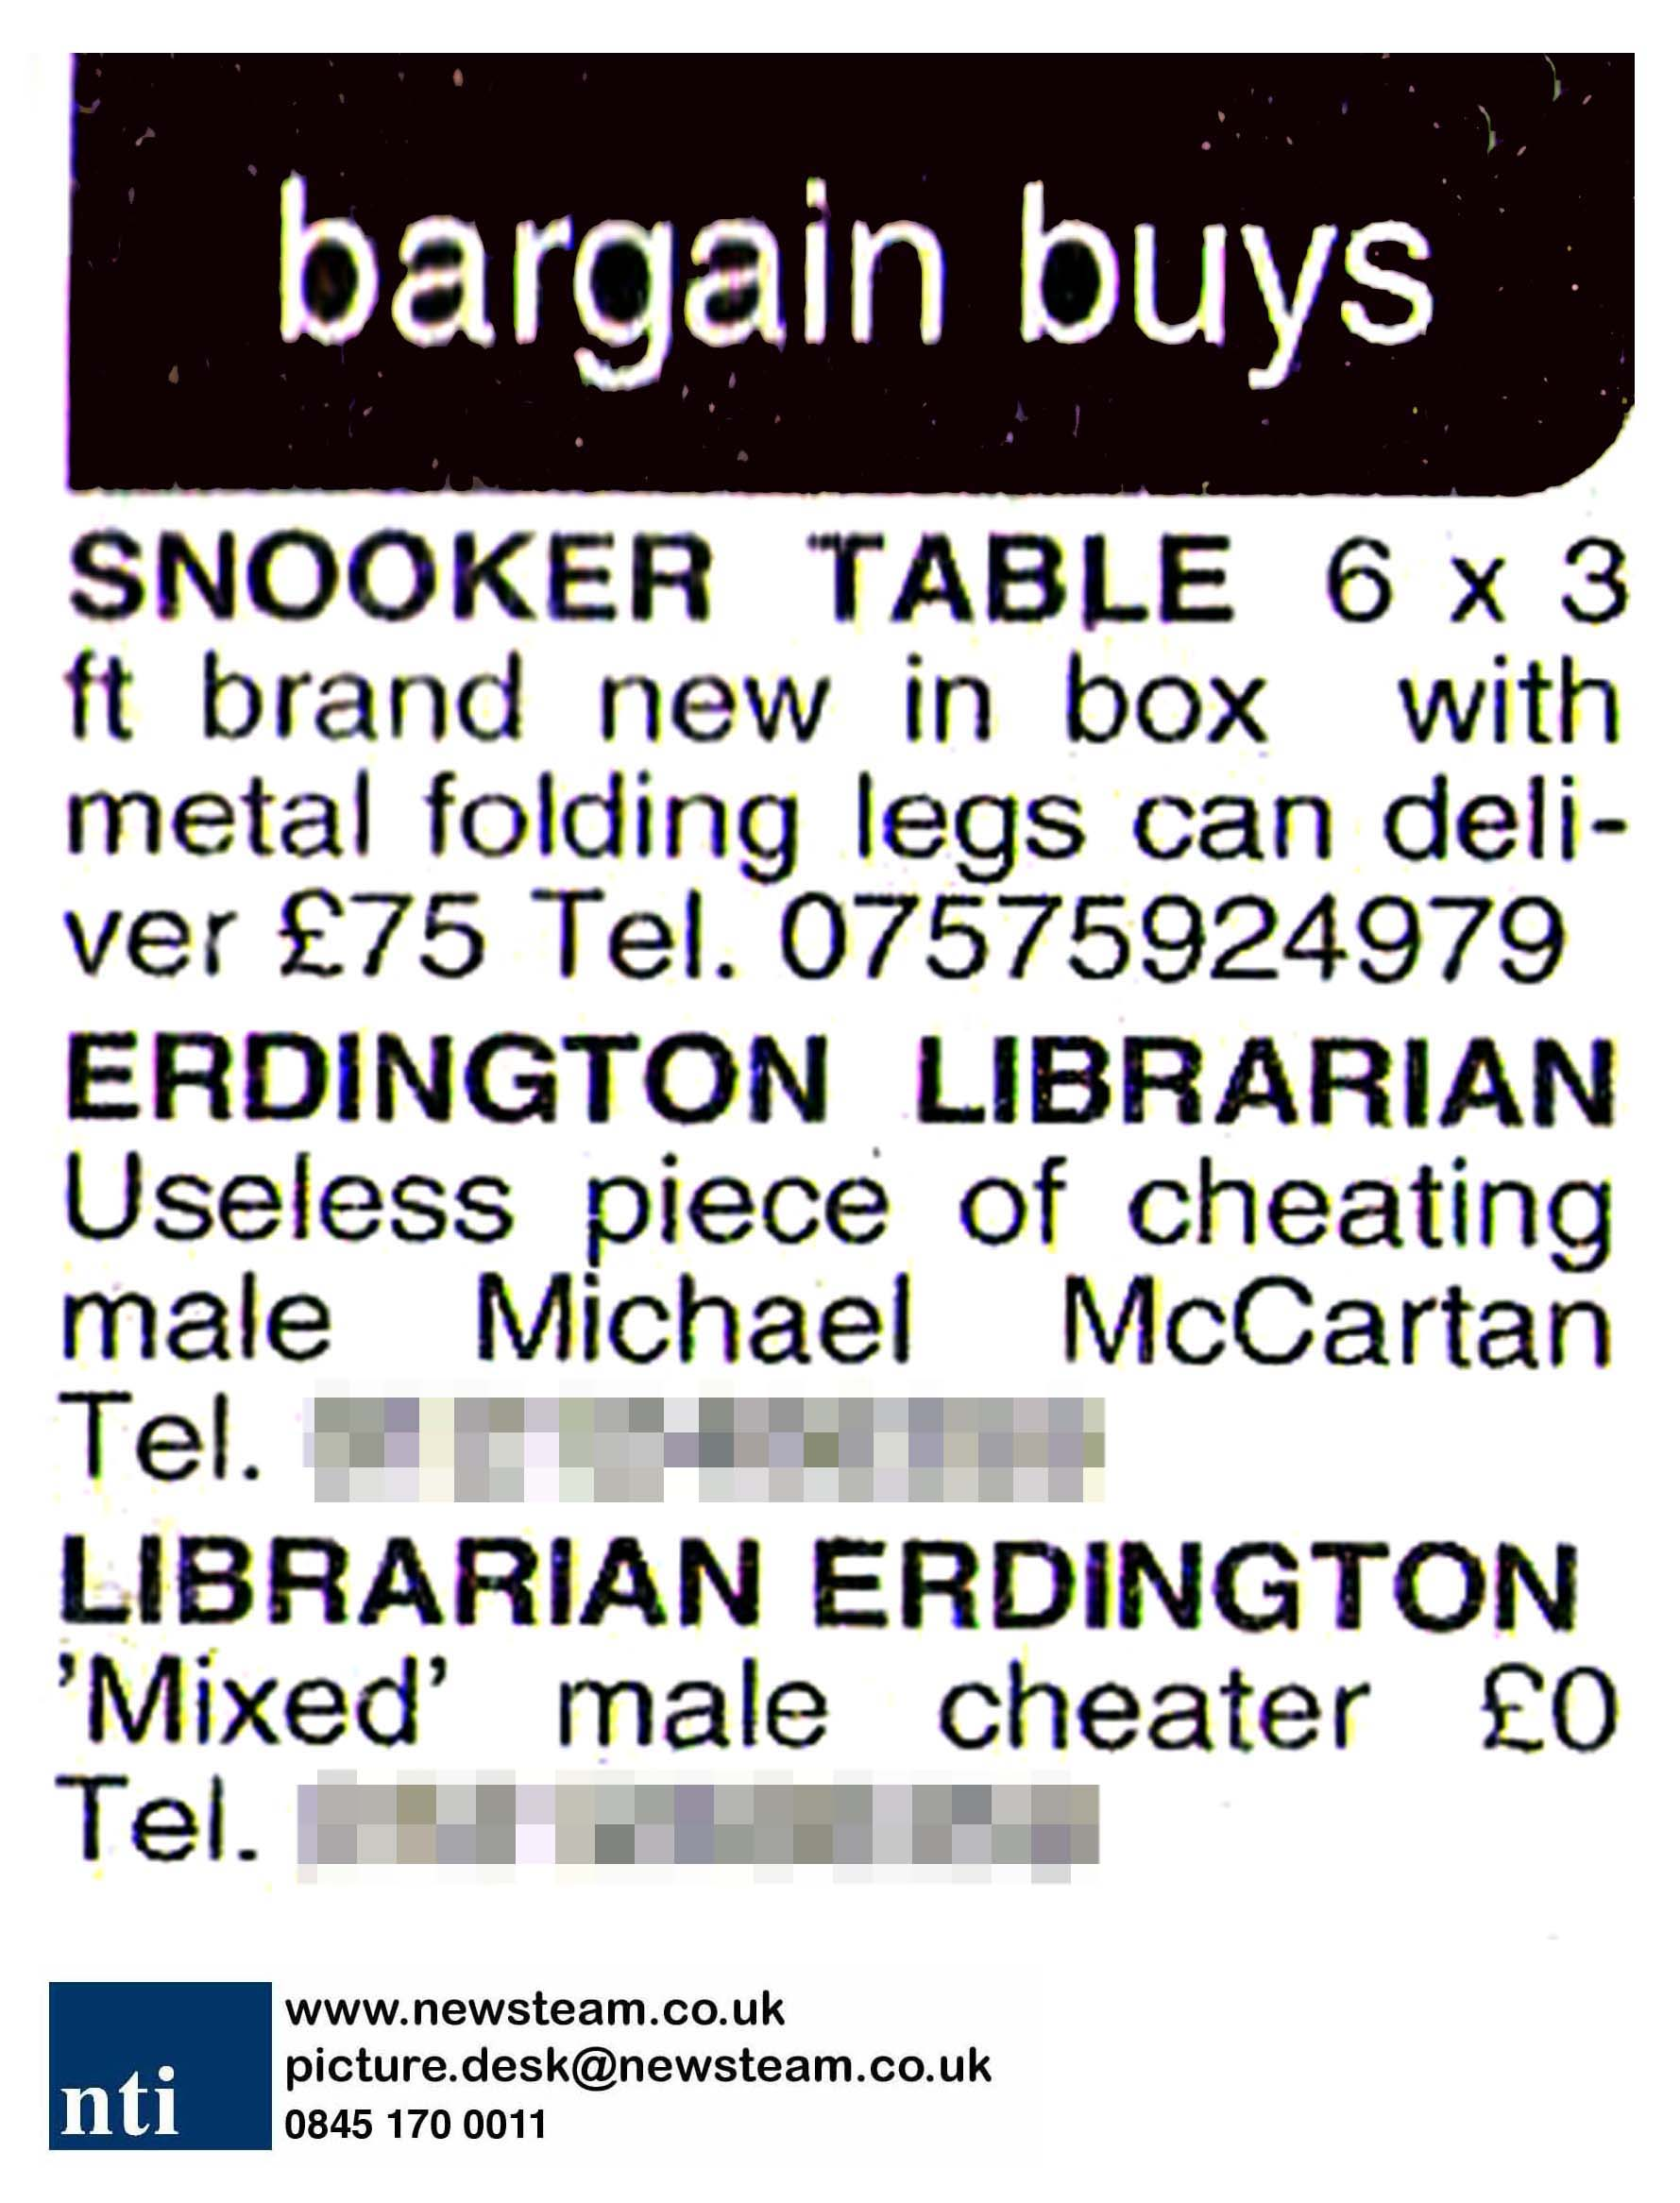 Jilted lover names and shames cheating ex in local newspaper